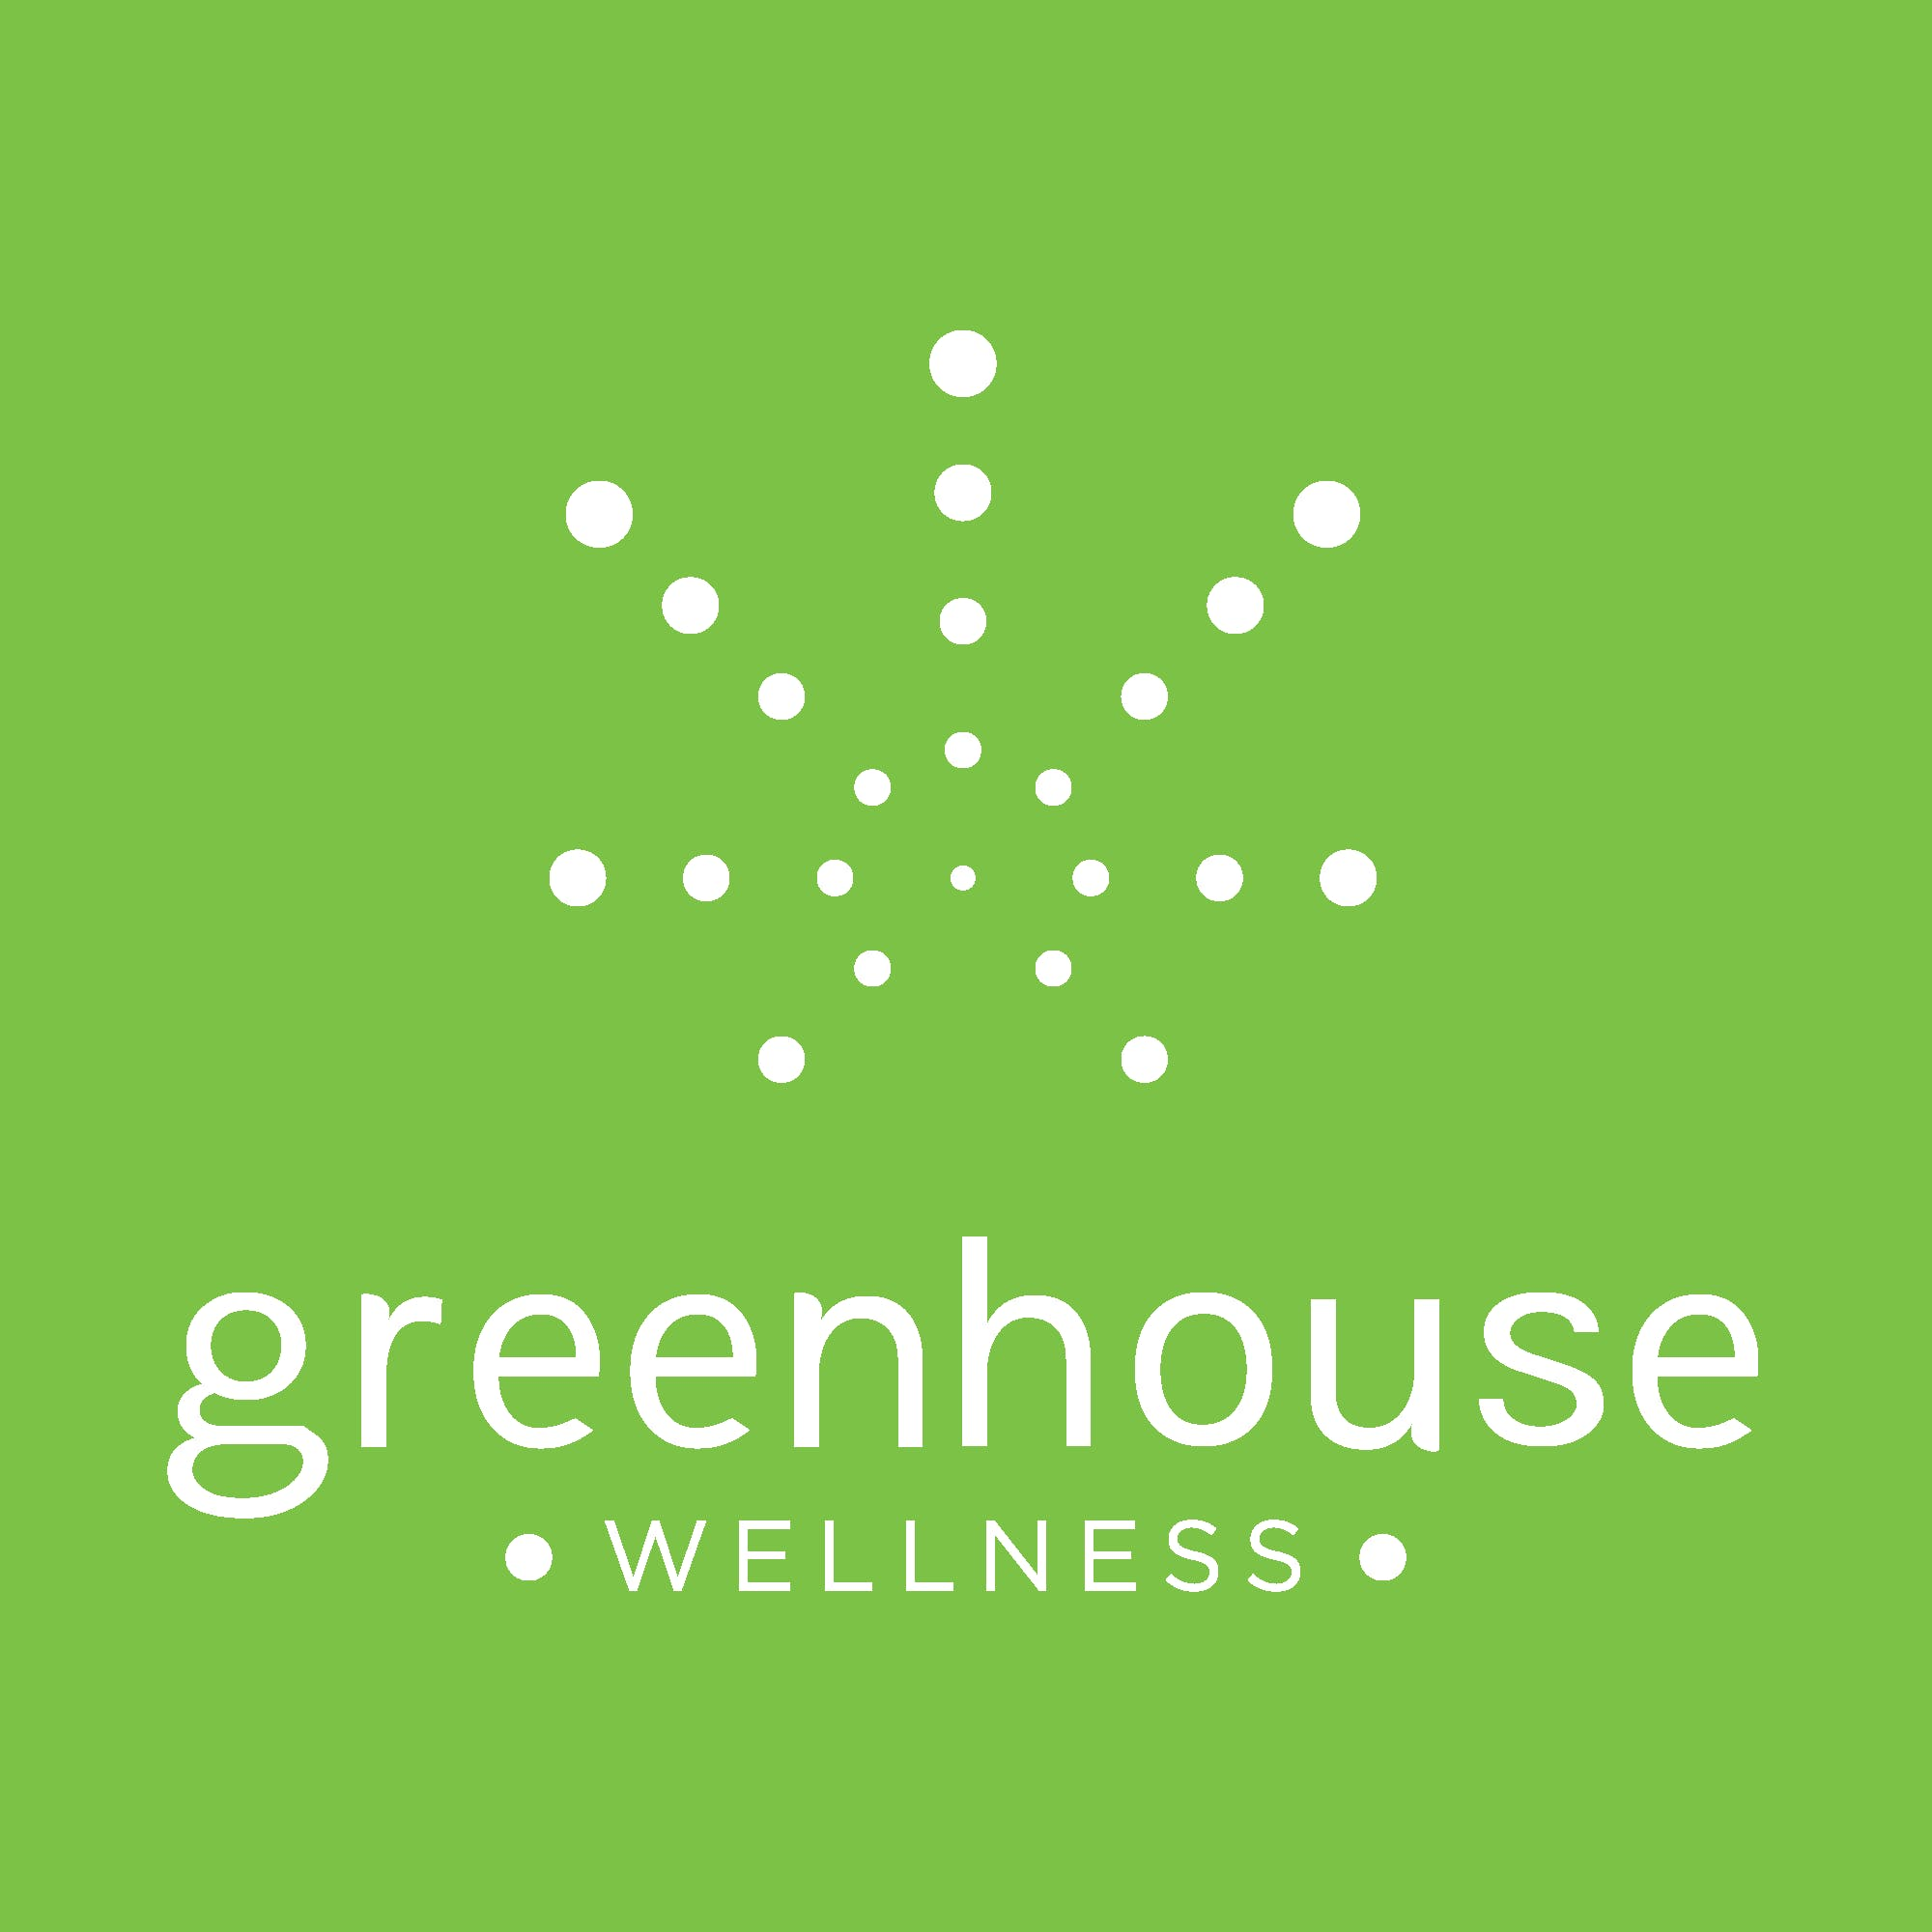 Greenhouse Wellness - Medical Marijuana Doctors - Cannabizme.com